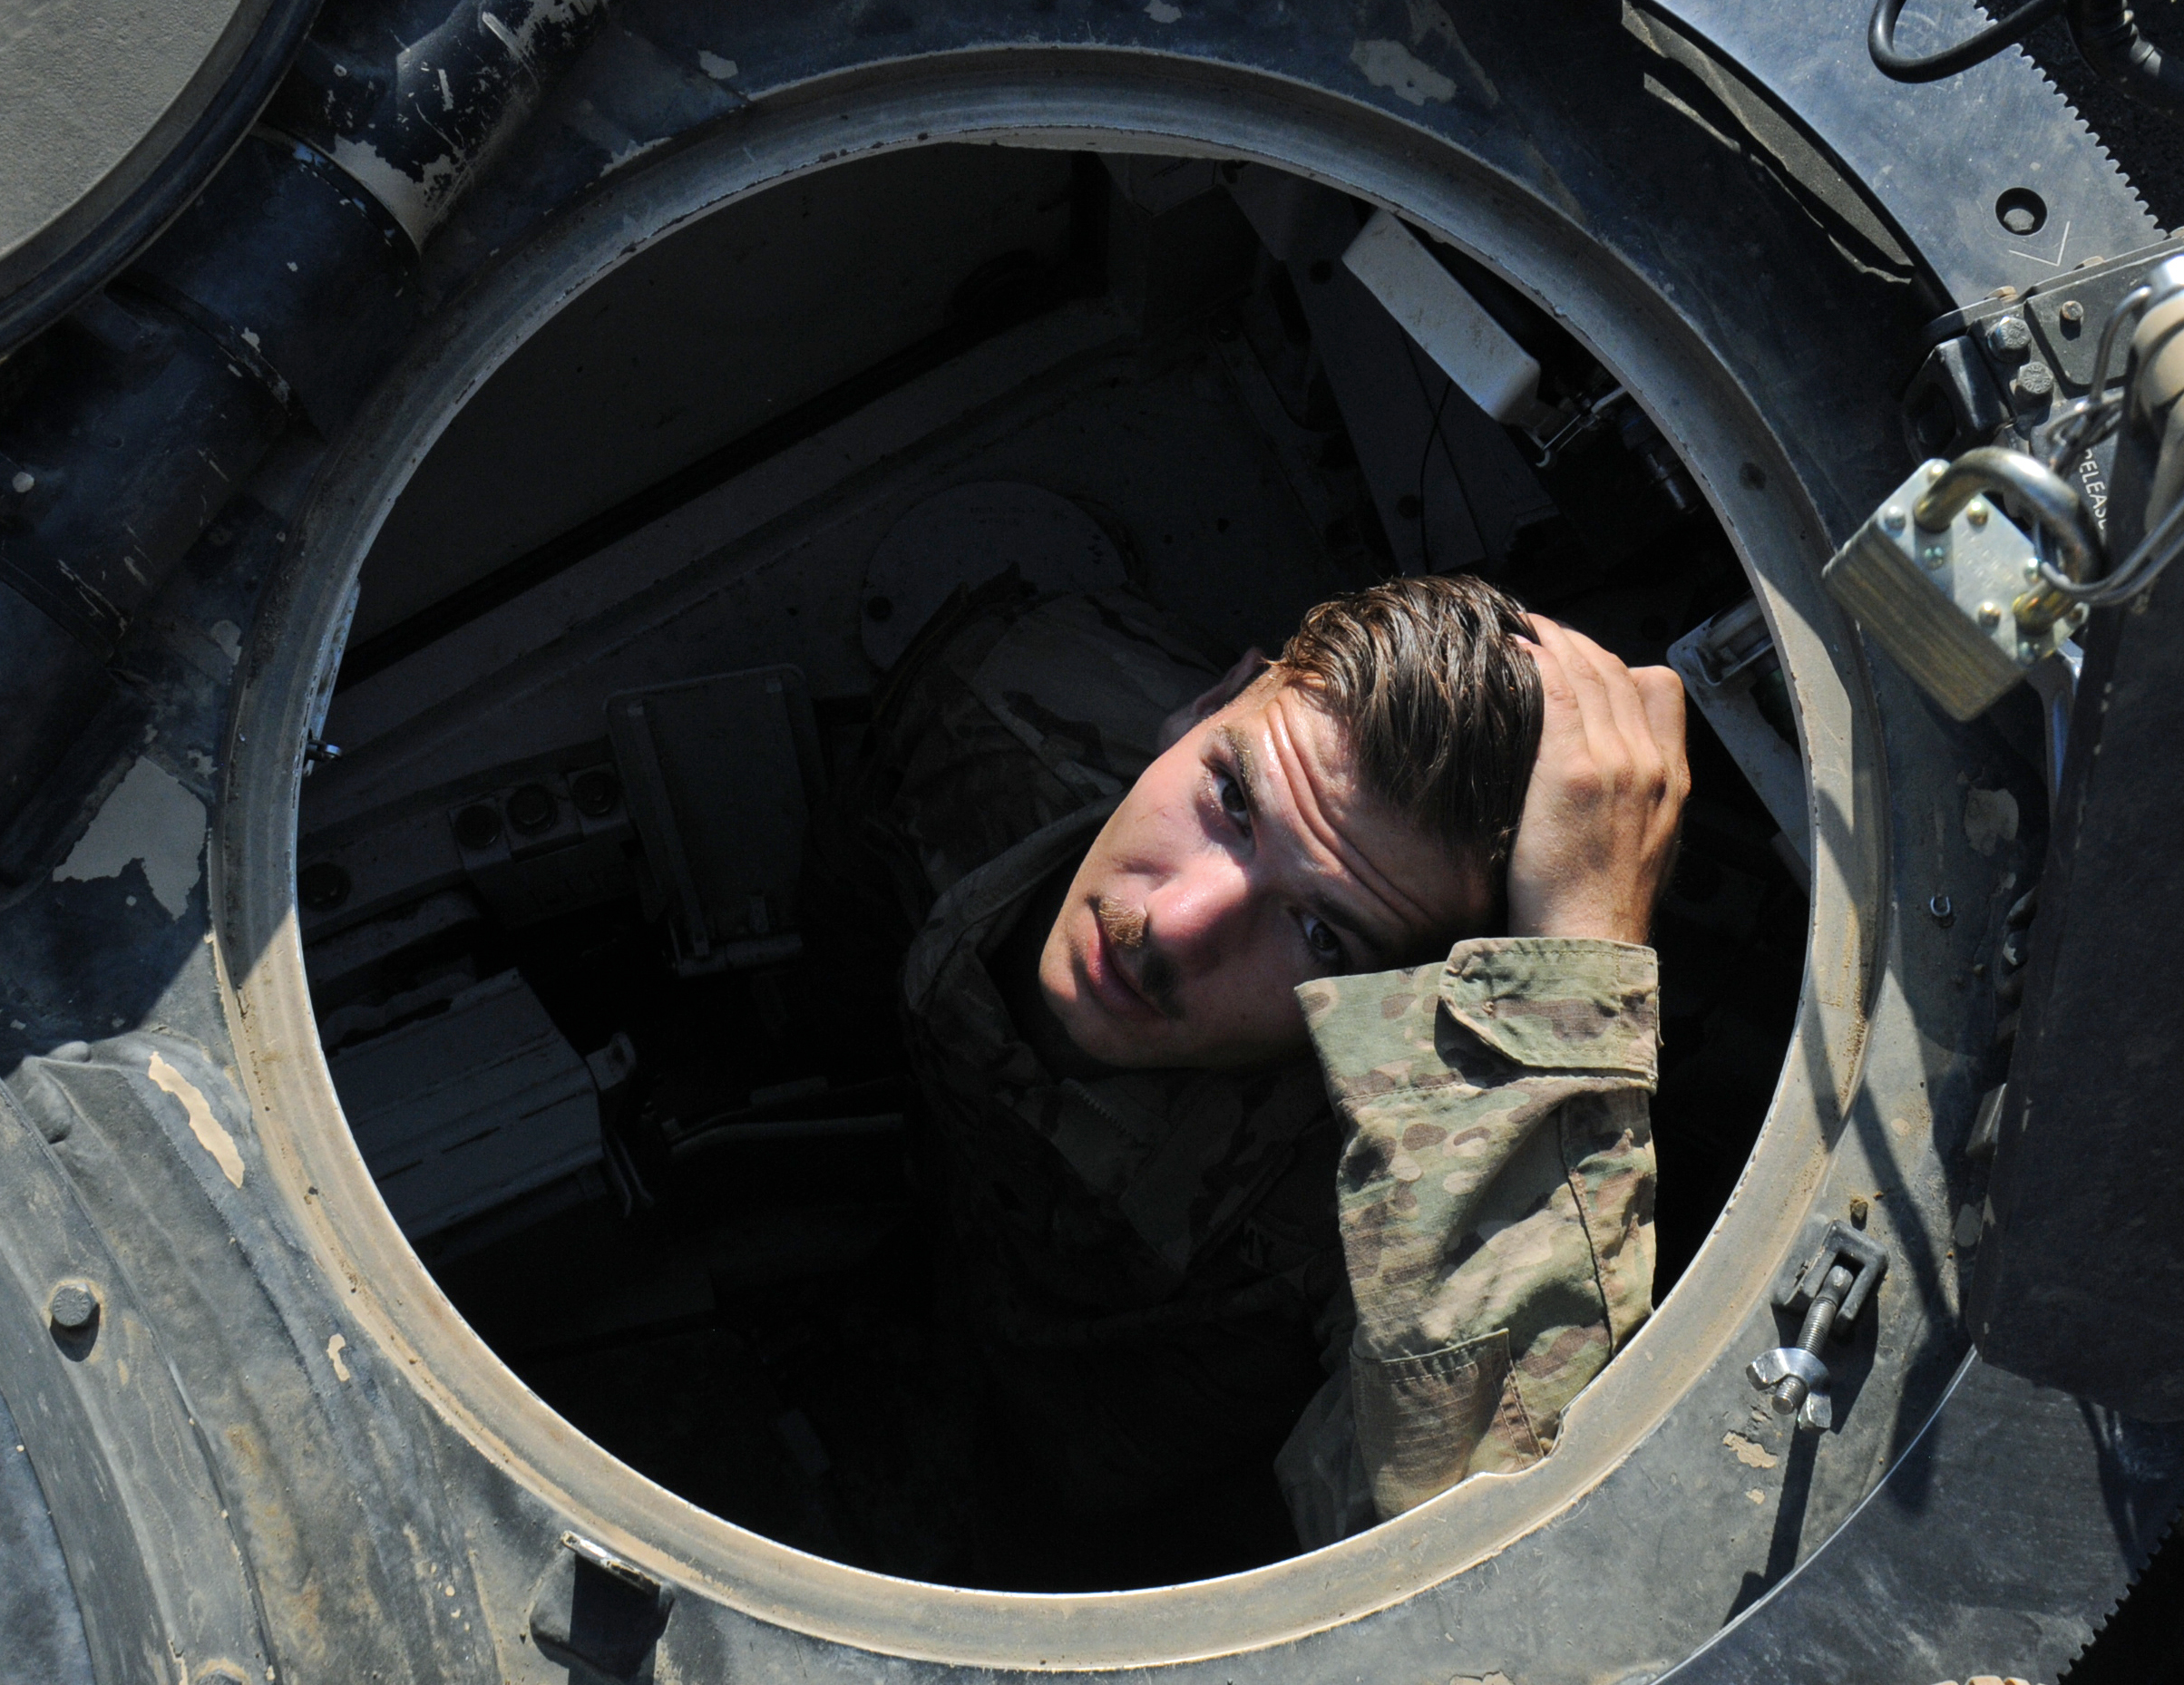 NOVO SELO TRAINIG AREA, Bulgaria – SPC Jonathan Cyr, Anvil Company, 1st Combined Arms Battalion, 64th Armor Regiment looks up from the hull of his tank July 21, 2016 as he gets ready to head out to the field with his company. The unit will spend 11-days in the field conducting platoon and company level situational training exercises (STX). 1st Bn., 64th Arm. Rgmt. is in Bulgaria in support of Operation Atlantic Resolve, a U.S. led effort in Eastern Europe that demonstrates U.S. commitment to the collective security of NATO and enduring peace and stability in the region.